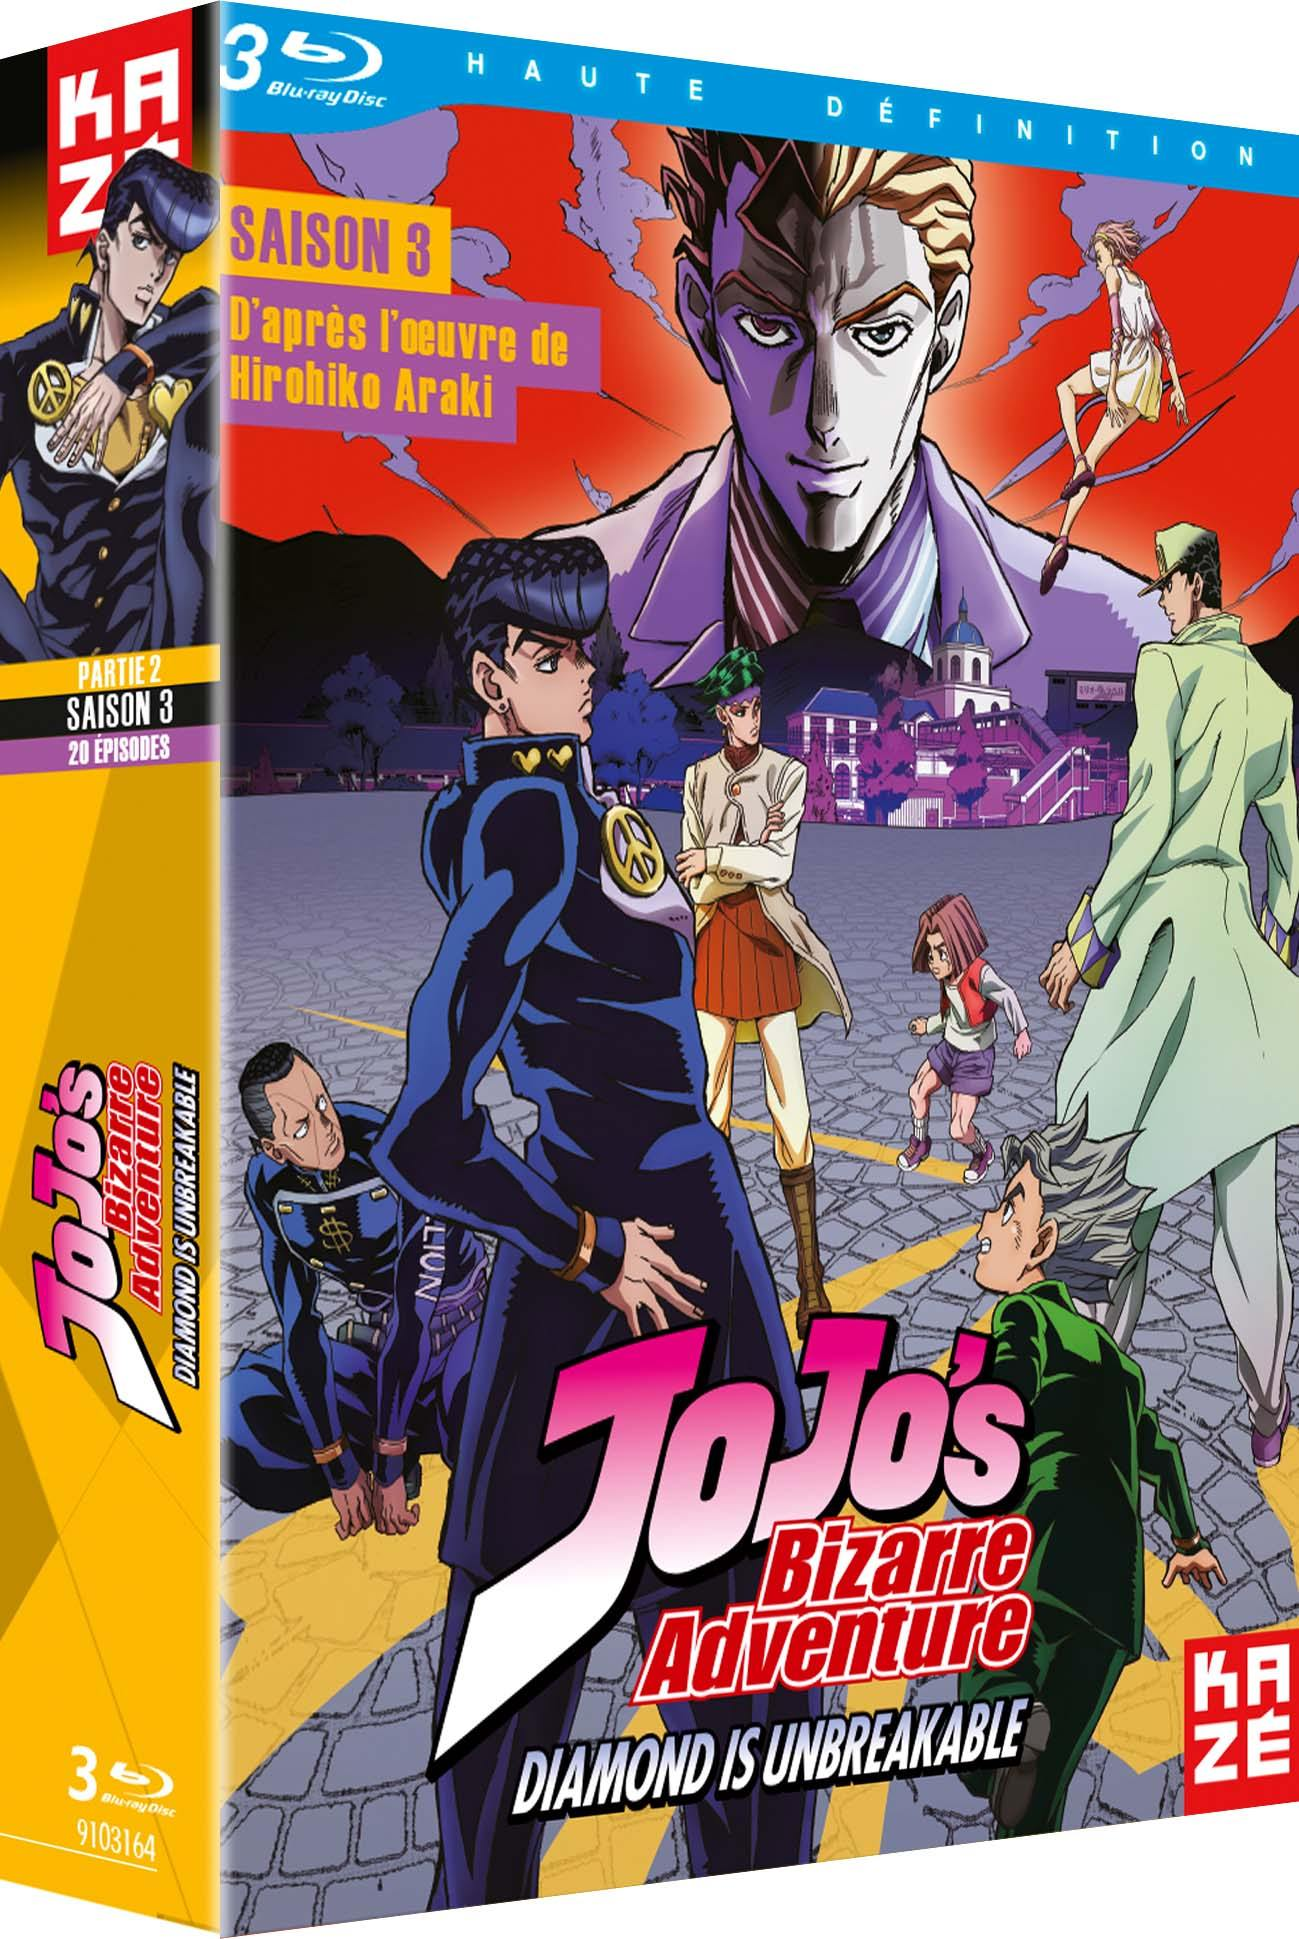 Jojo's bizarre adventure - saison 3 - diamond is unbreakable - partie 2 sur 2 -